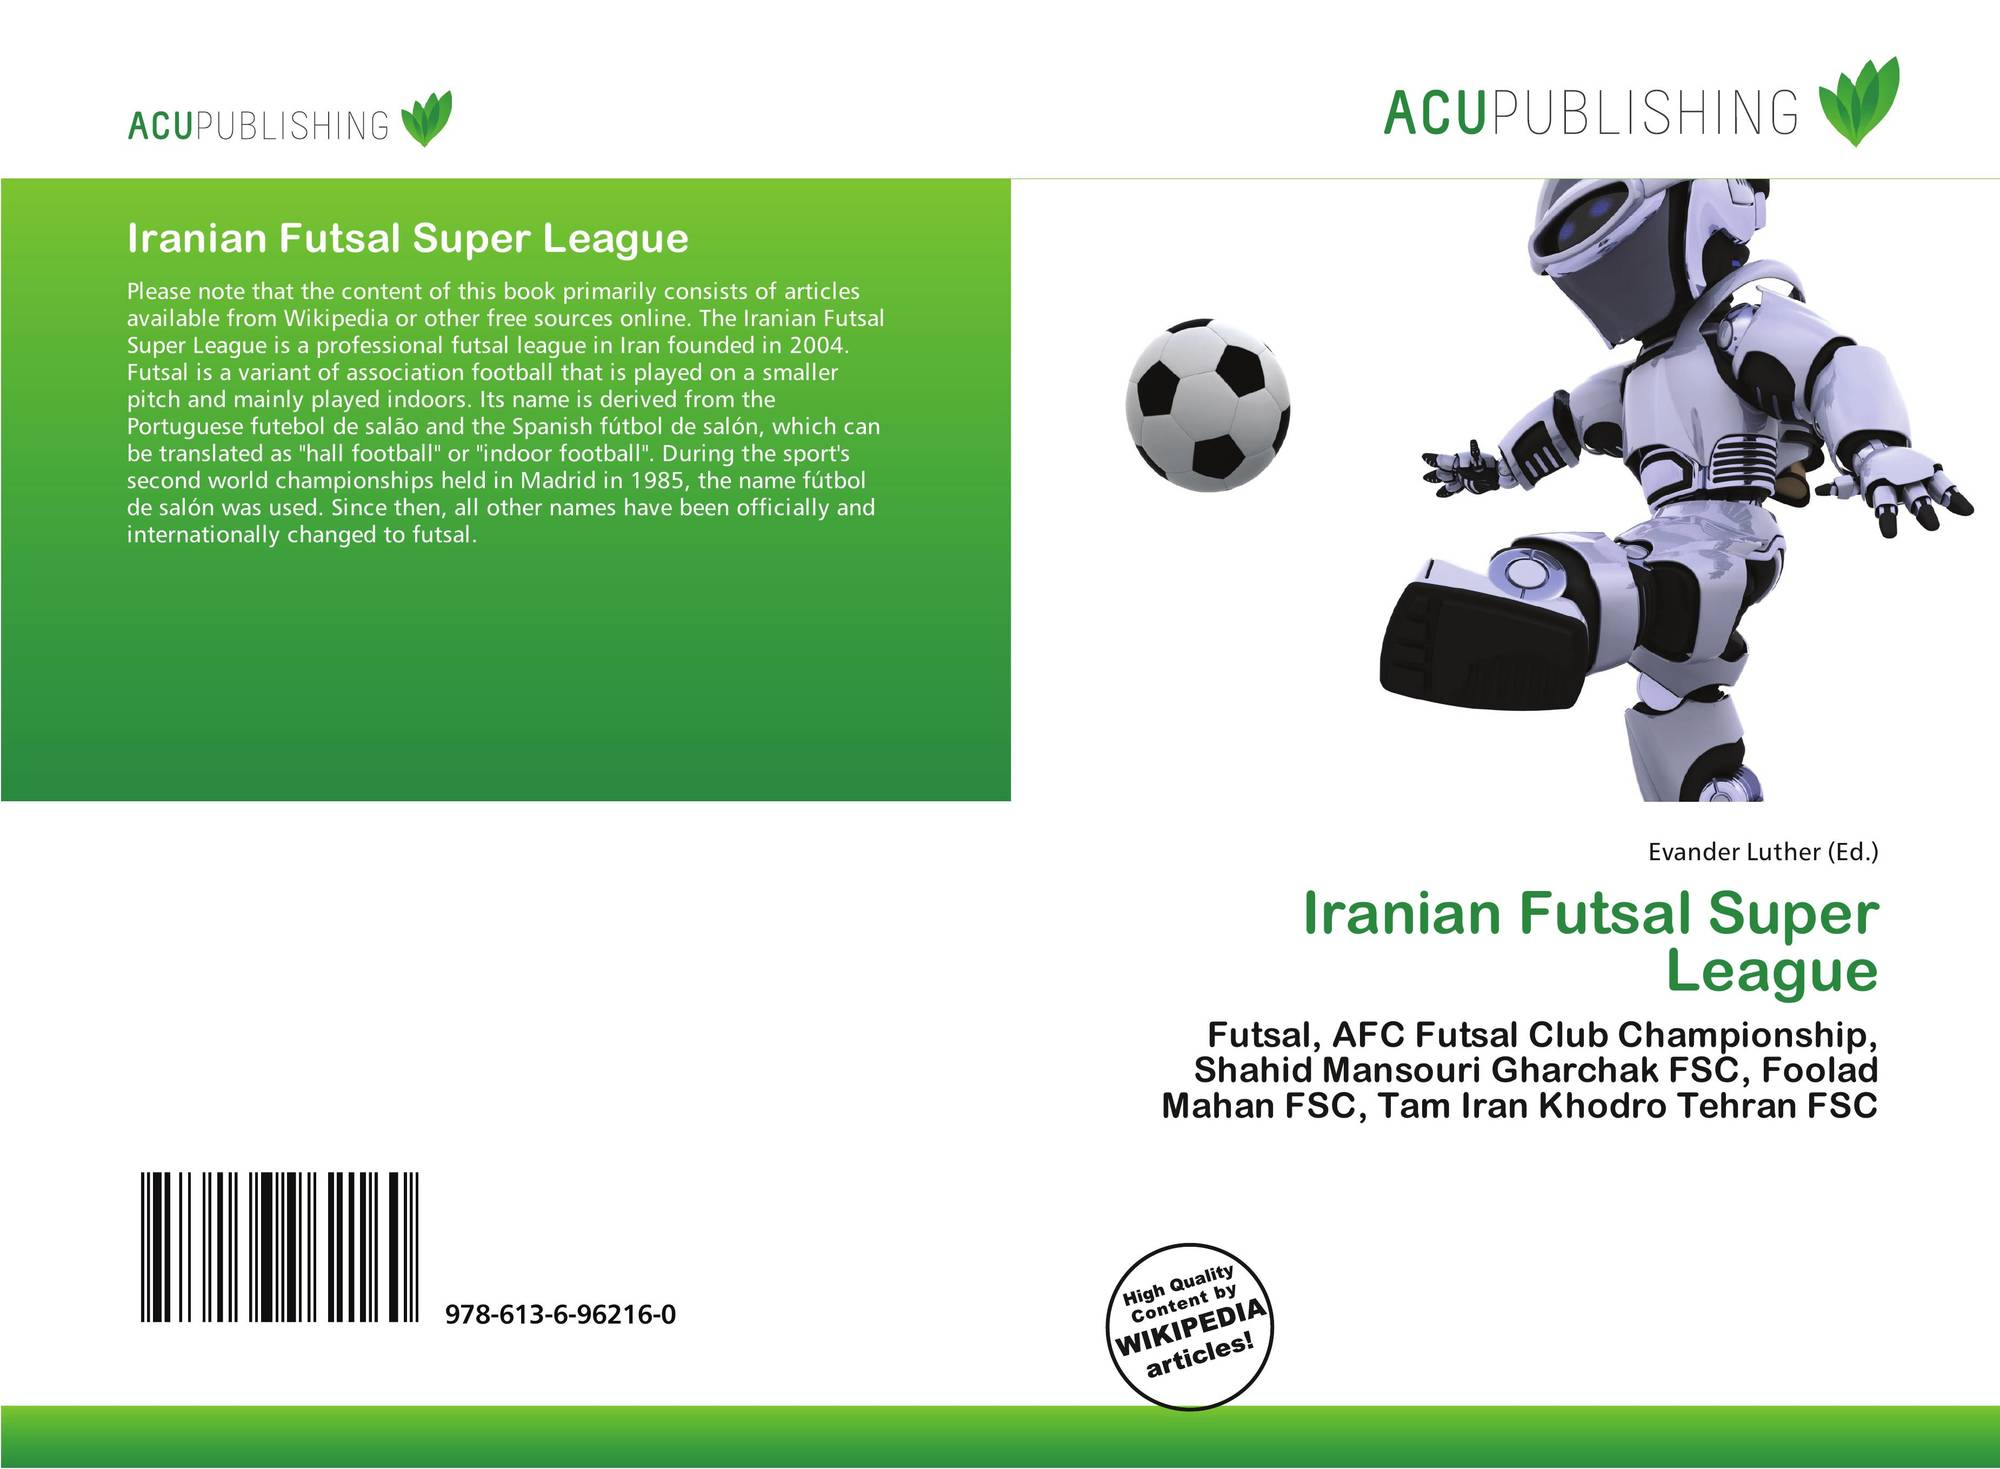 Iranian futsal super league 978 613 6 96216 0 6136962160 for Acu salon prices